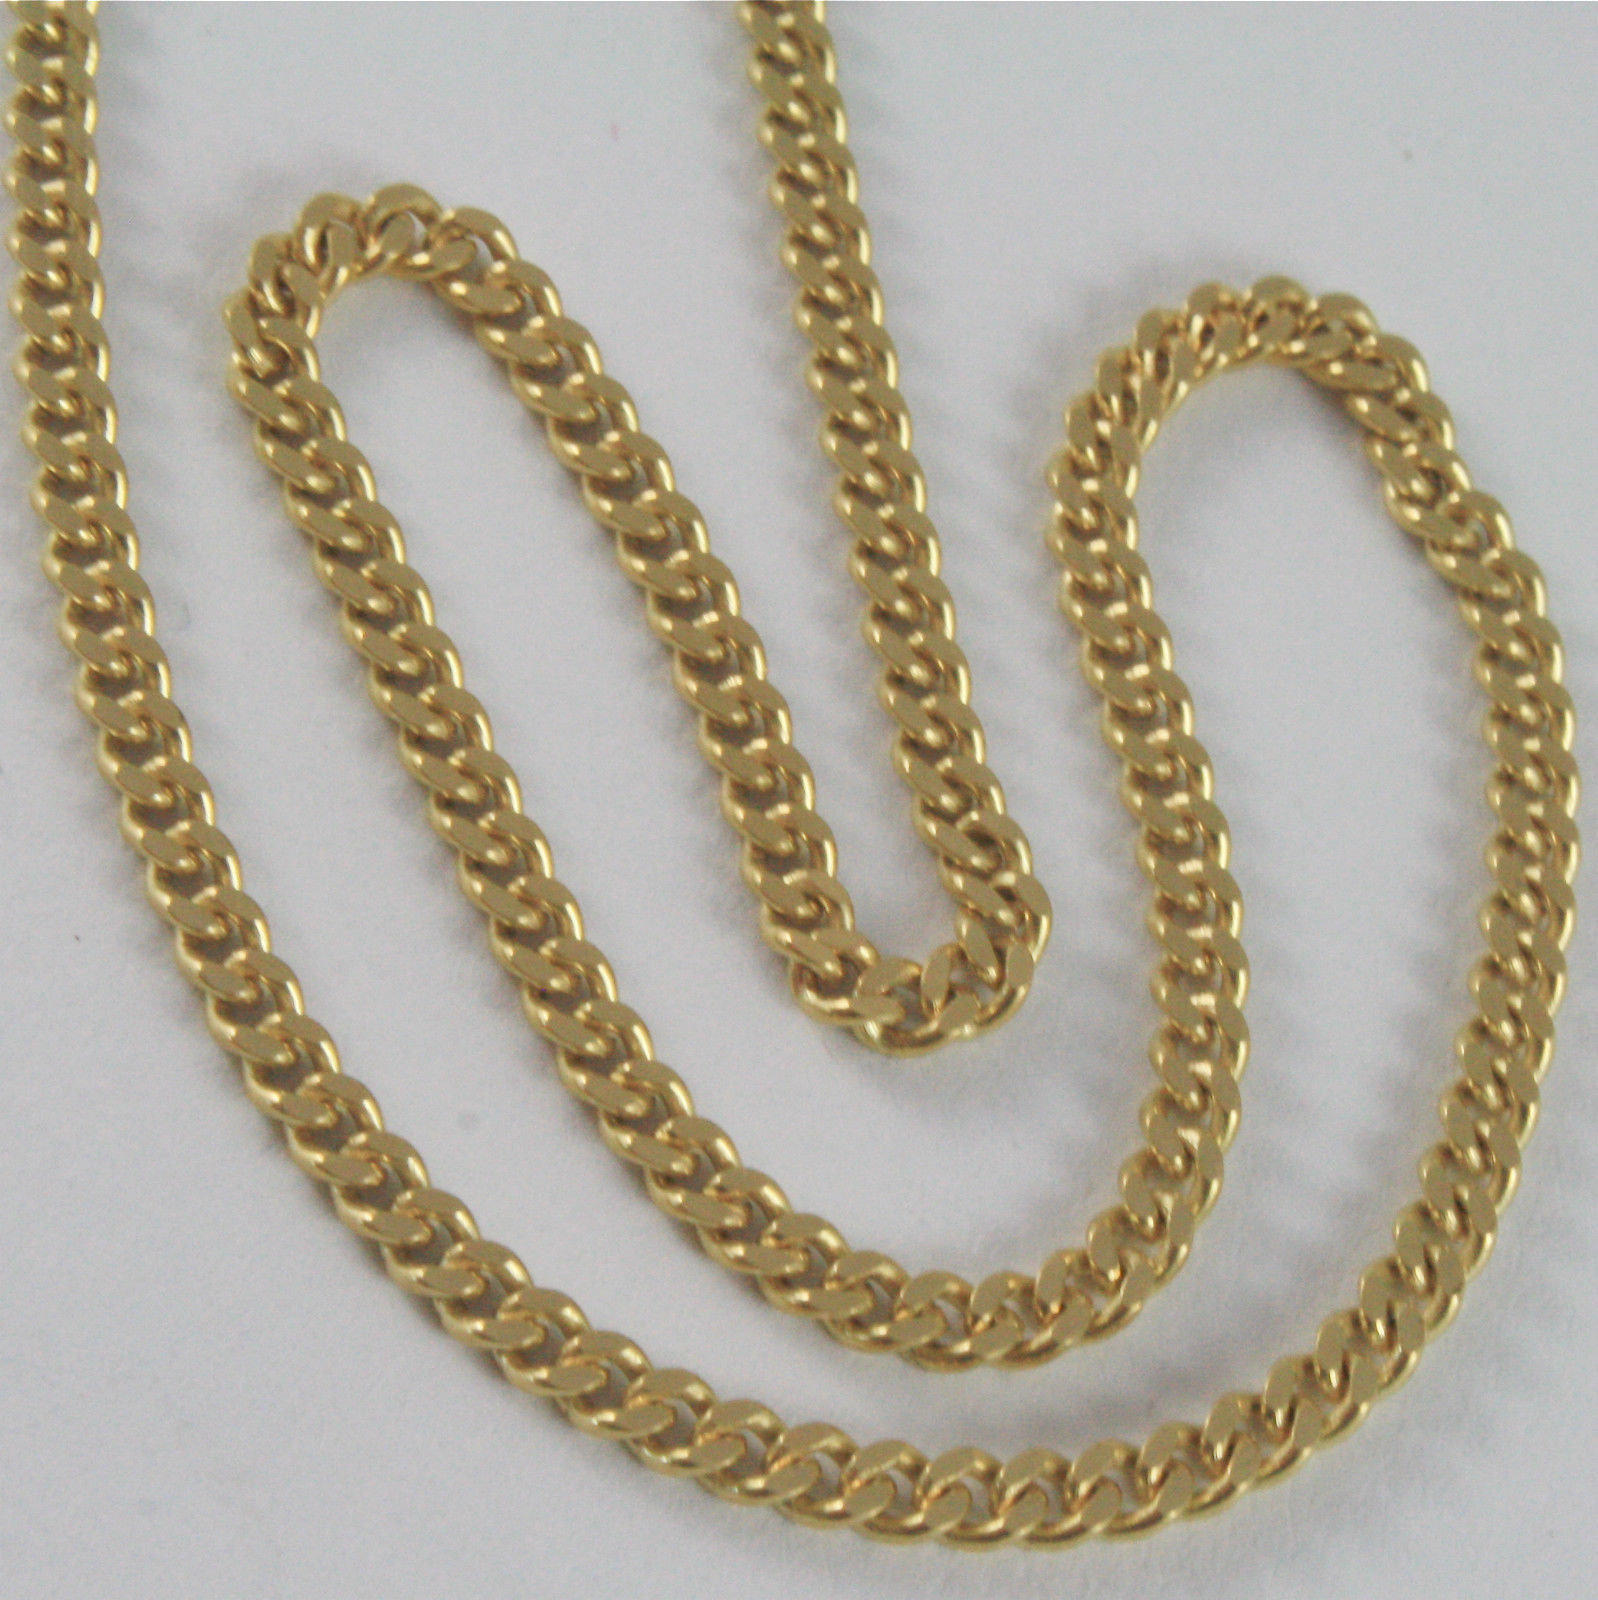 SOLID 18K YELLOW GOLD CHAIN MASSIVE GOURMETTE LINK, FLAT NECKLACE, MADE IN ITALY